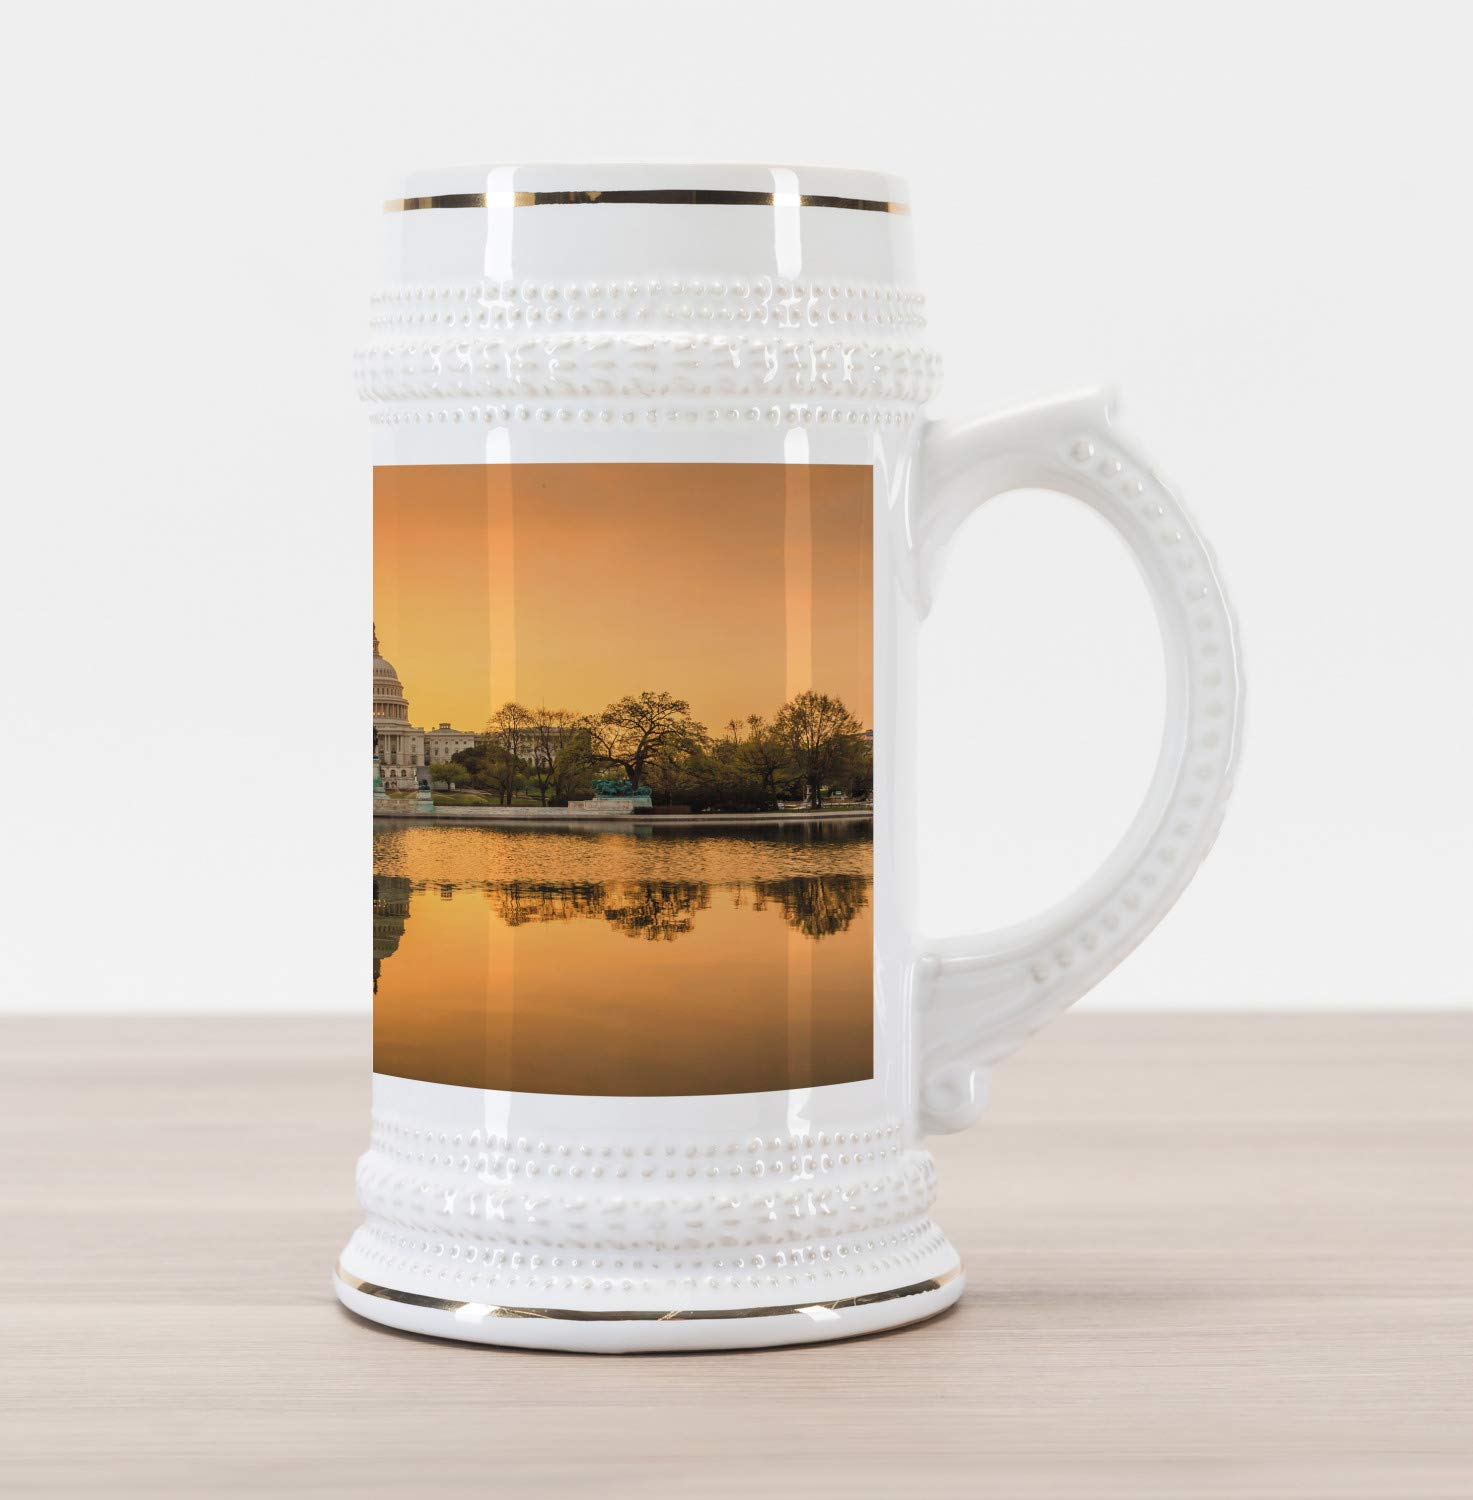 Ambesonne United States Beer Stein Mug, Washington DC American Capital City White House above the Lake Landscape, Traditional Style Decorative Printed Ceramic Large Beer Mug Stein, Apricot Ginger